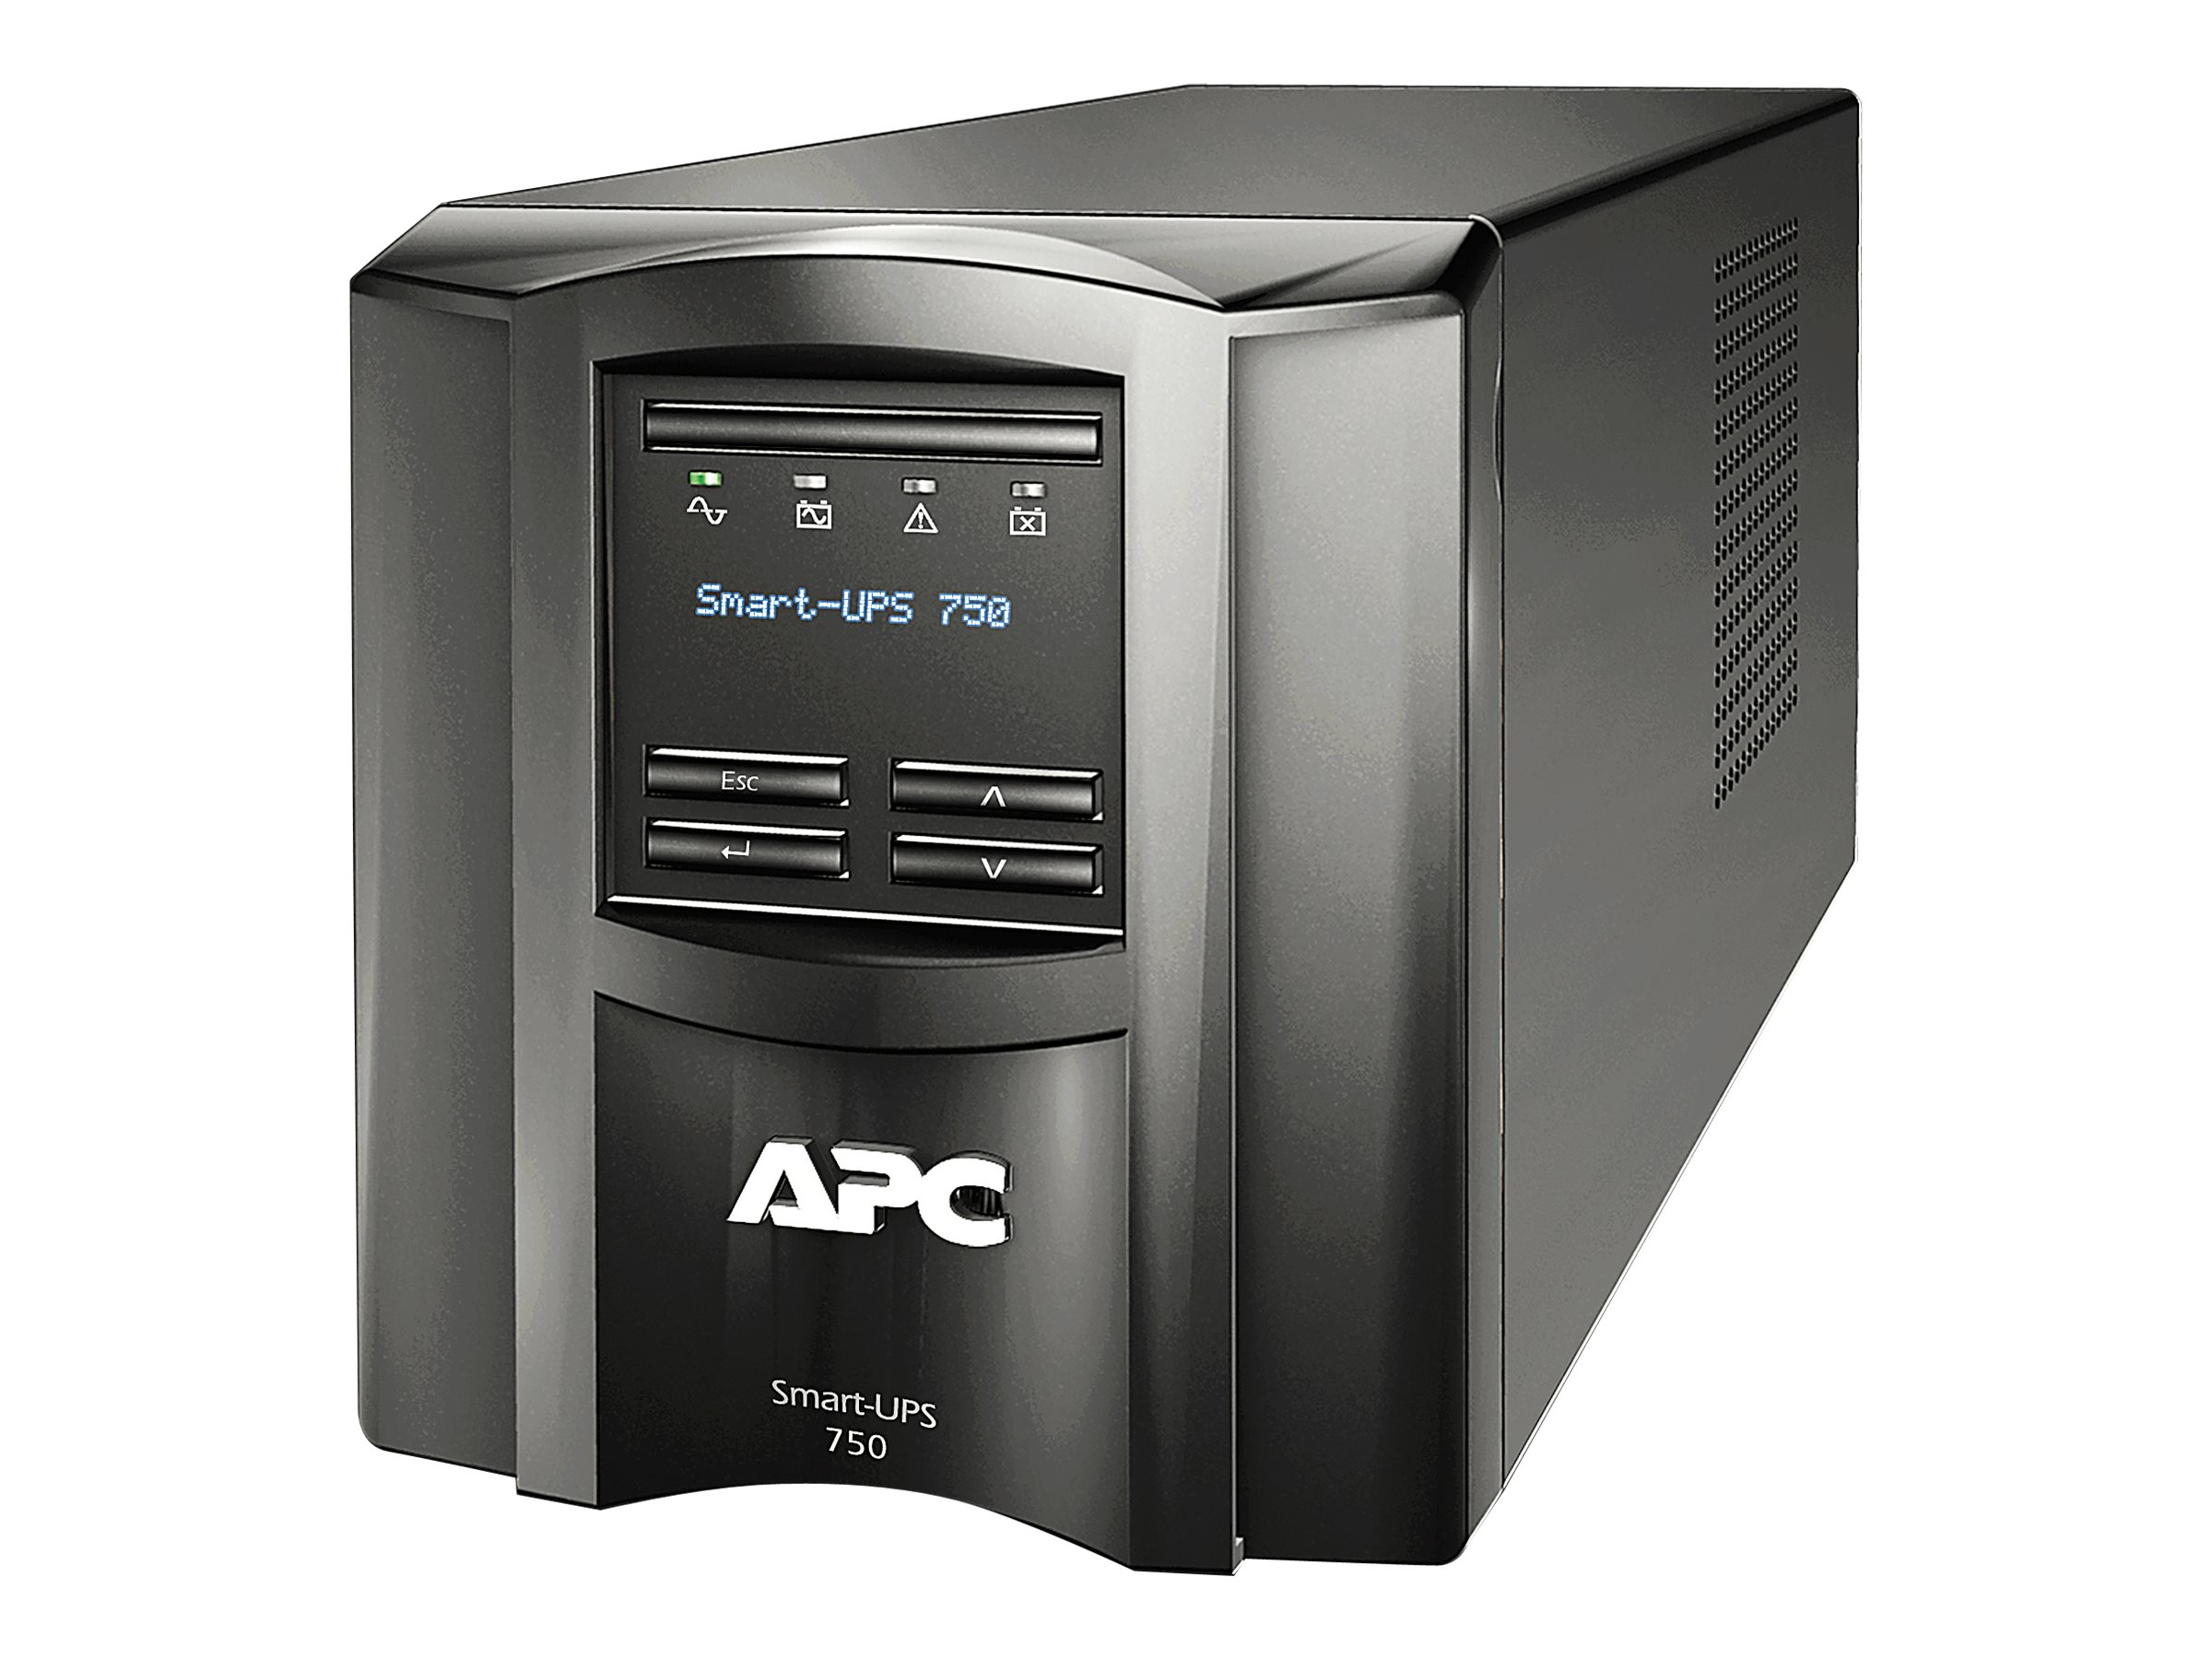 APC Smart-UPS 750VA 500W 120V LCD Tower UPS (6) 5-15R Outlets